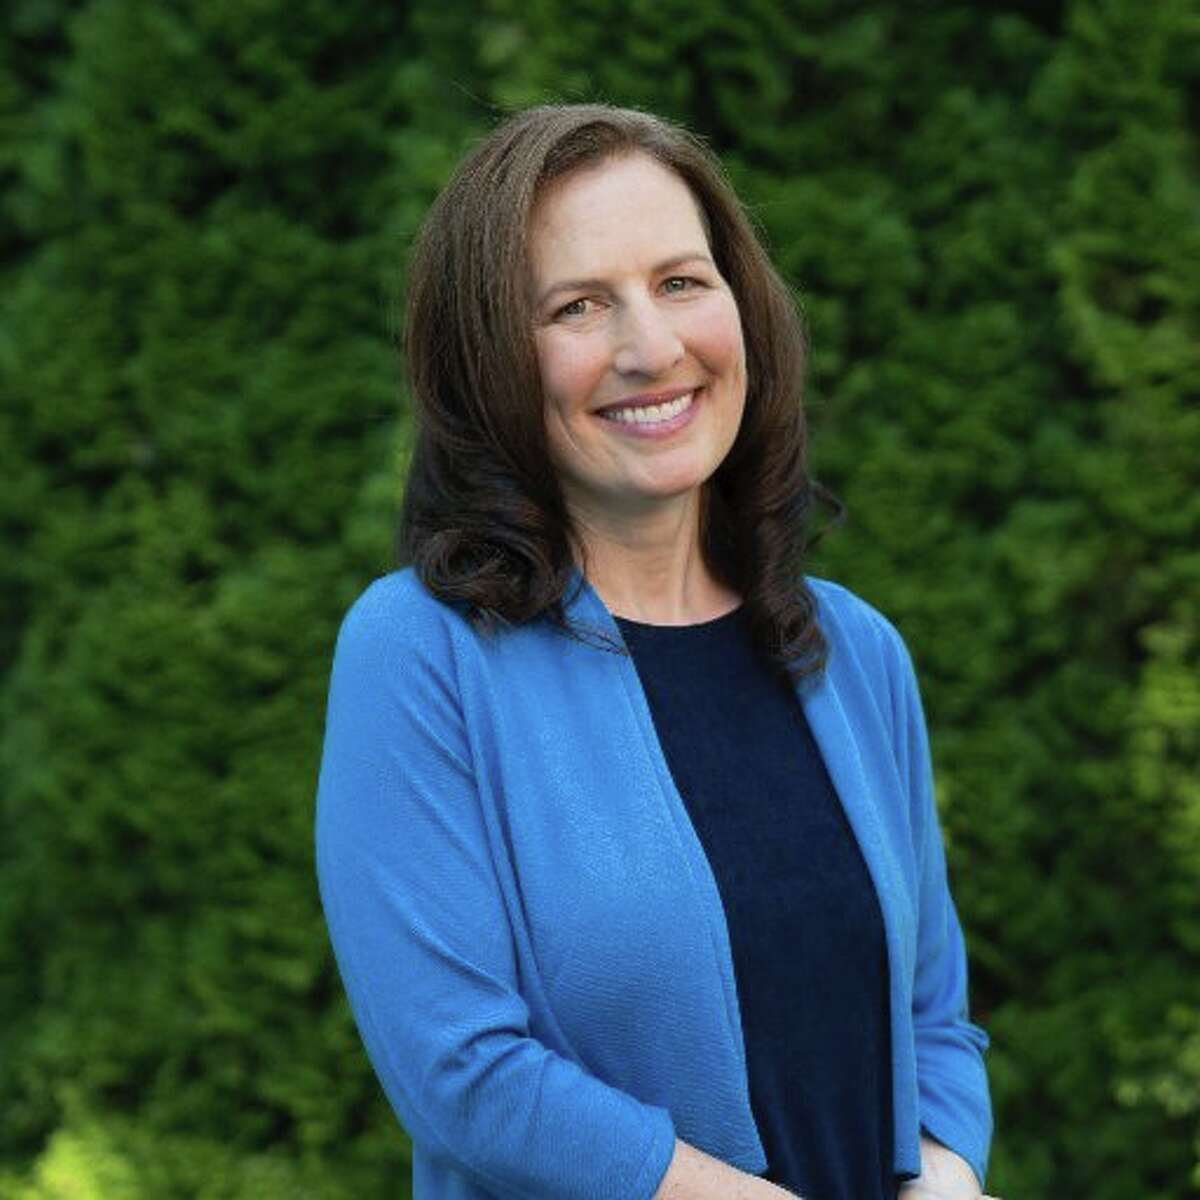 Dr. Kim Schrier, longtime Issaquah pediatrician running for Congress in the 8th District.  A Republican